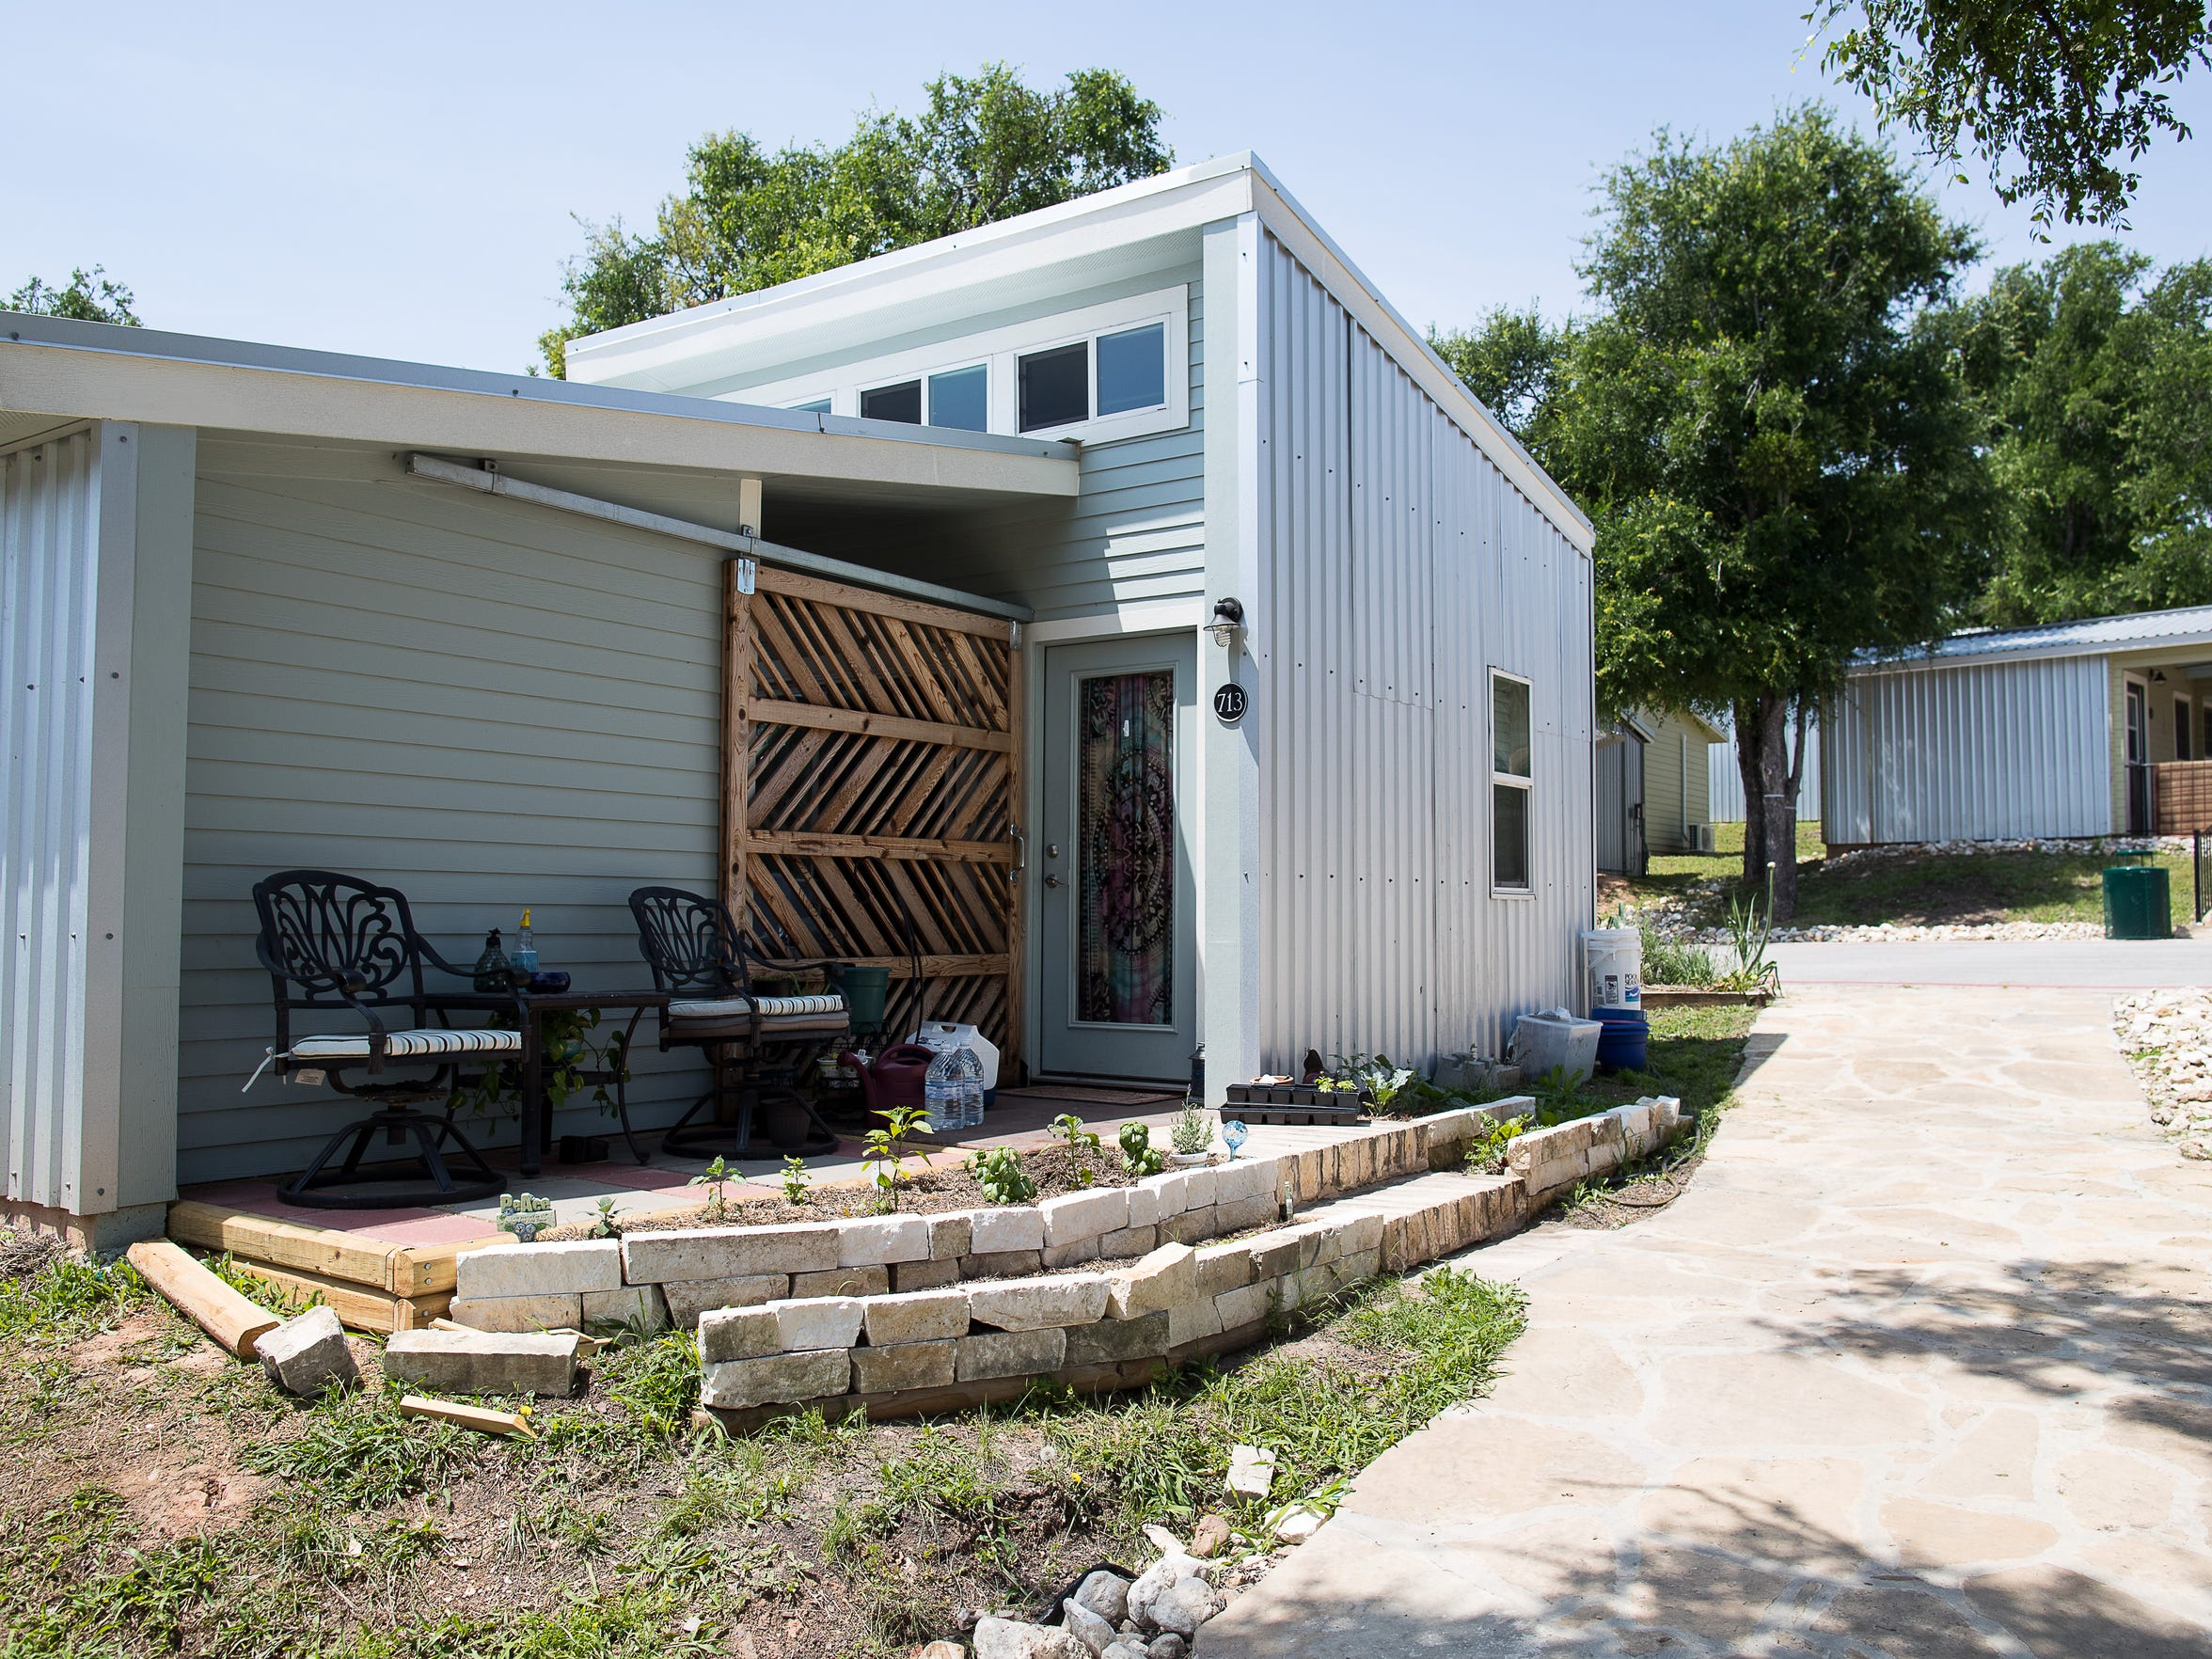 Tiny homes for the chronically homeless in the Community First! Village in Travis County Texas.